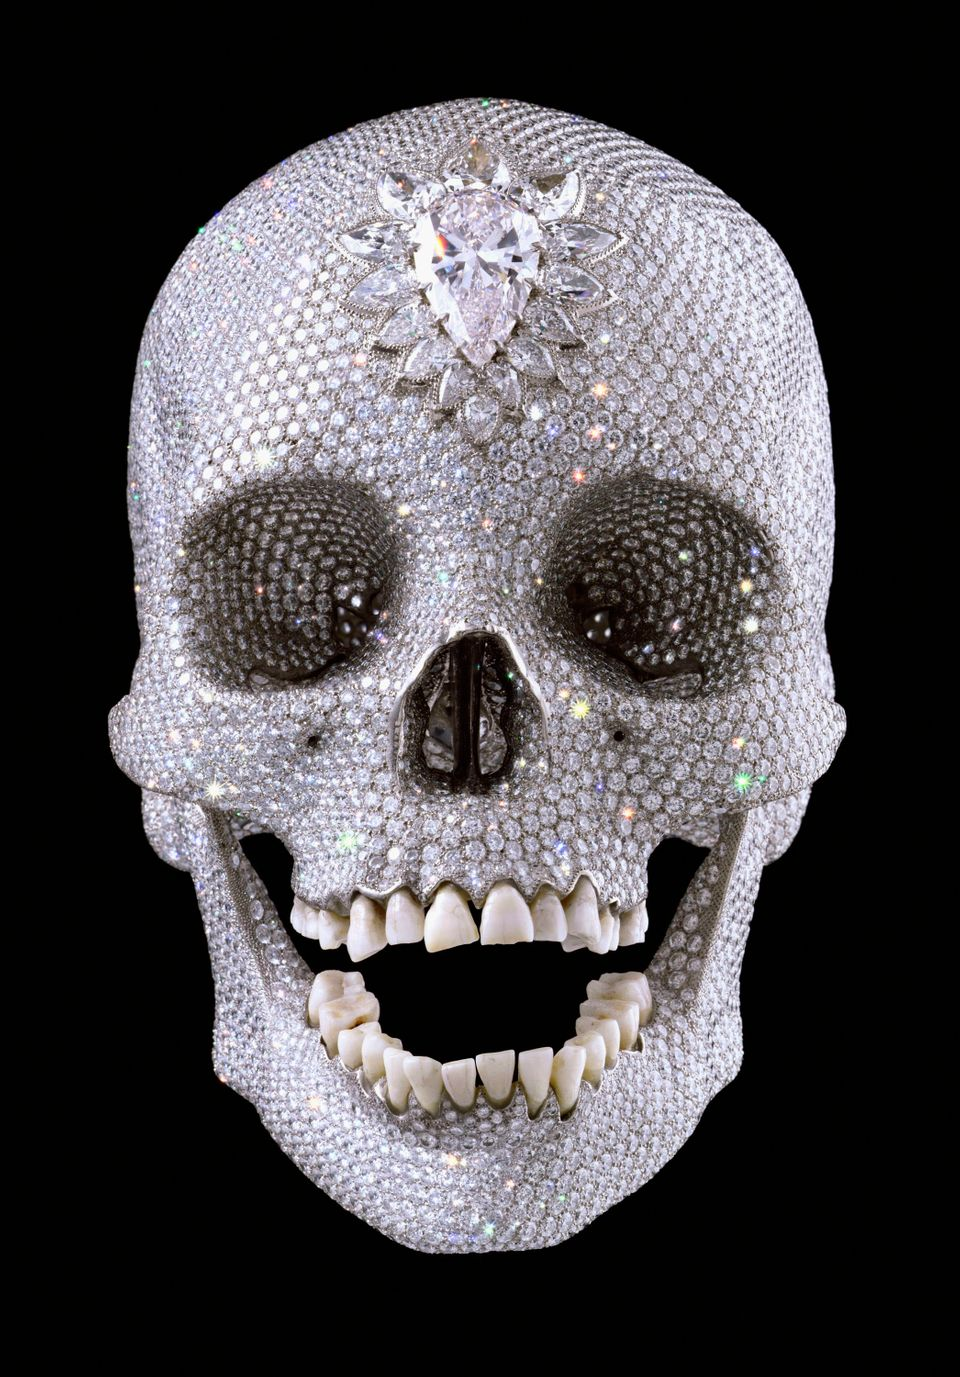 Artist Damien Hirst is well known for his affinity for human skulls. This particular skull is shown covered with 8,601 diamon